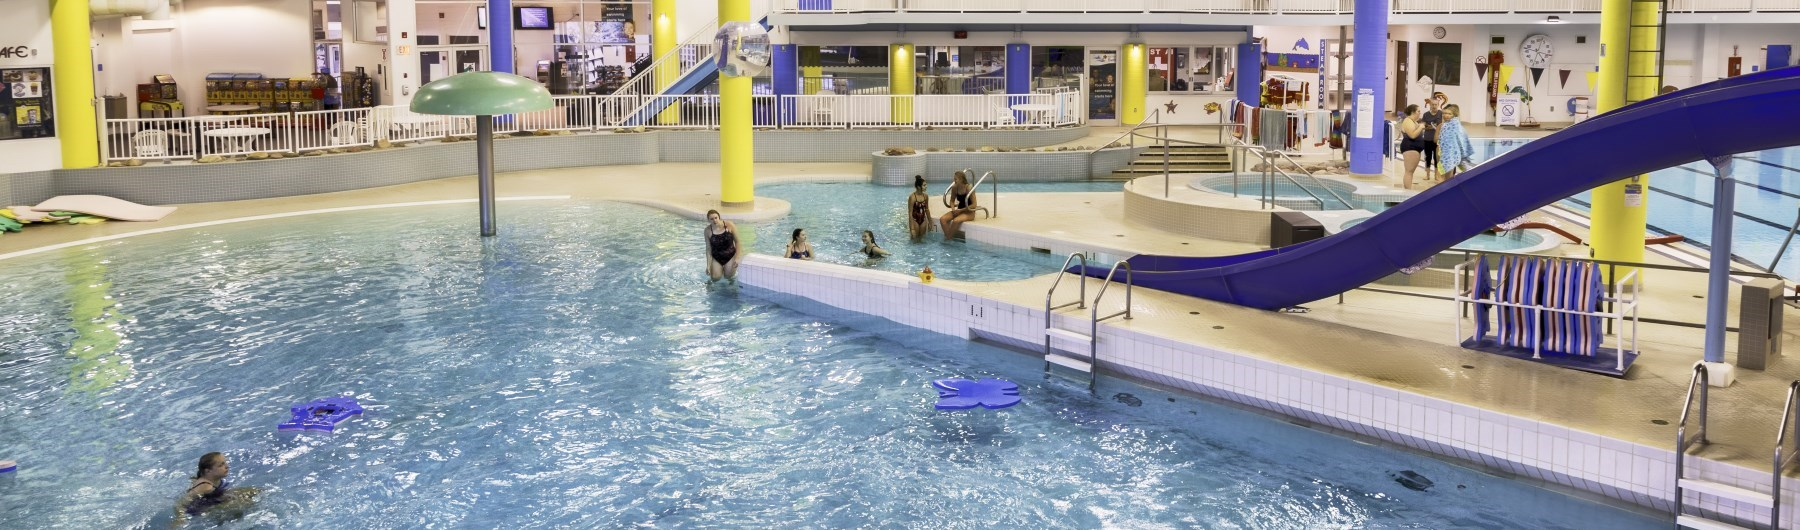 Bioclean Aquatic Centre